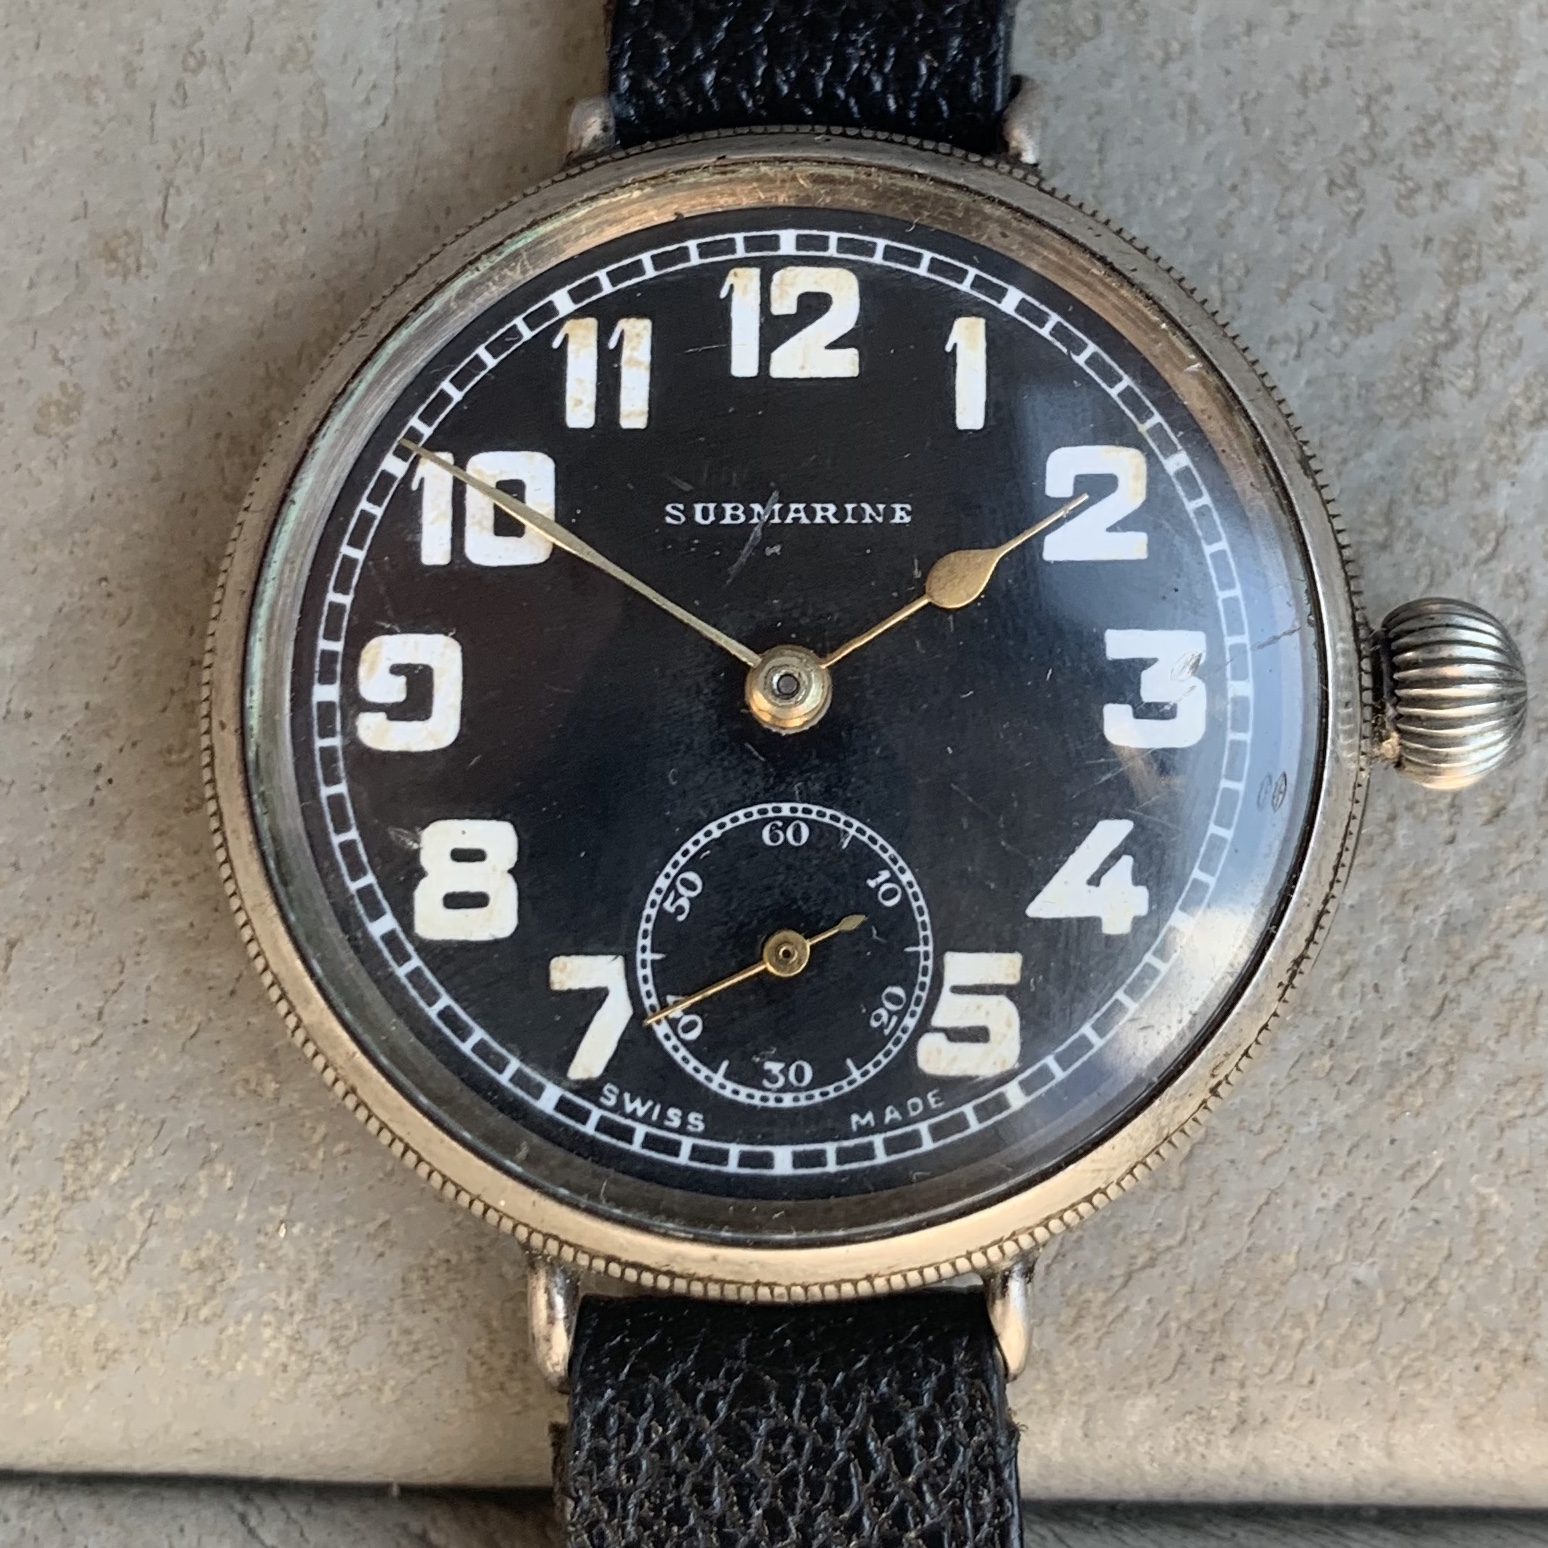 WW1 Submarine Watch (posted on behalf of jamelee)